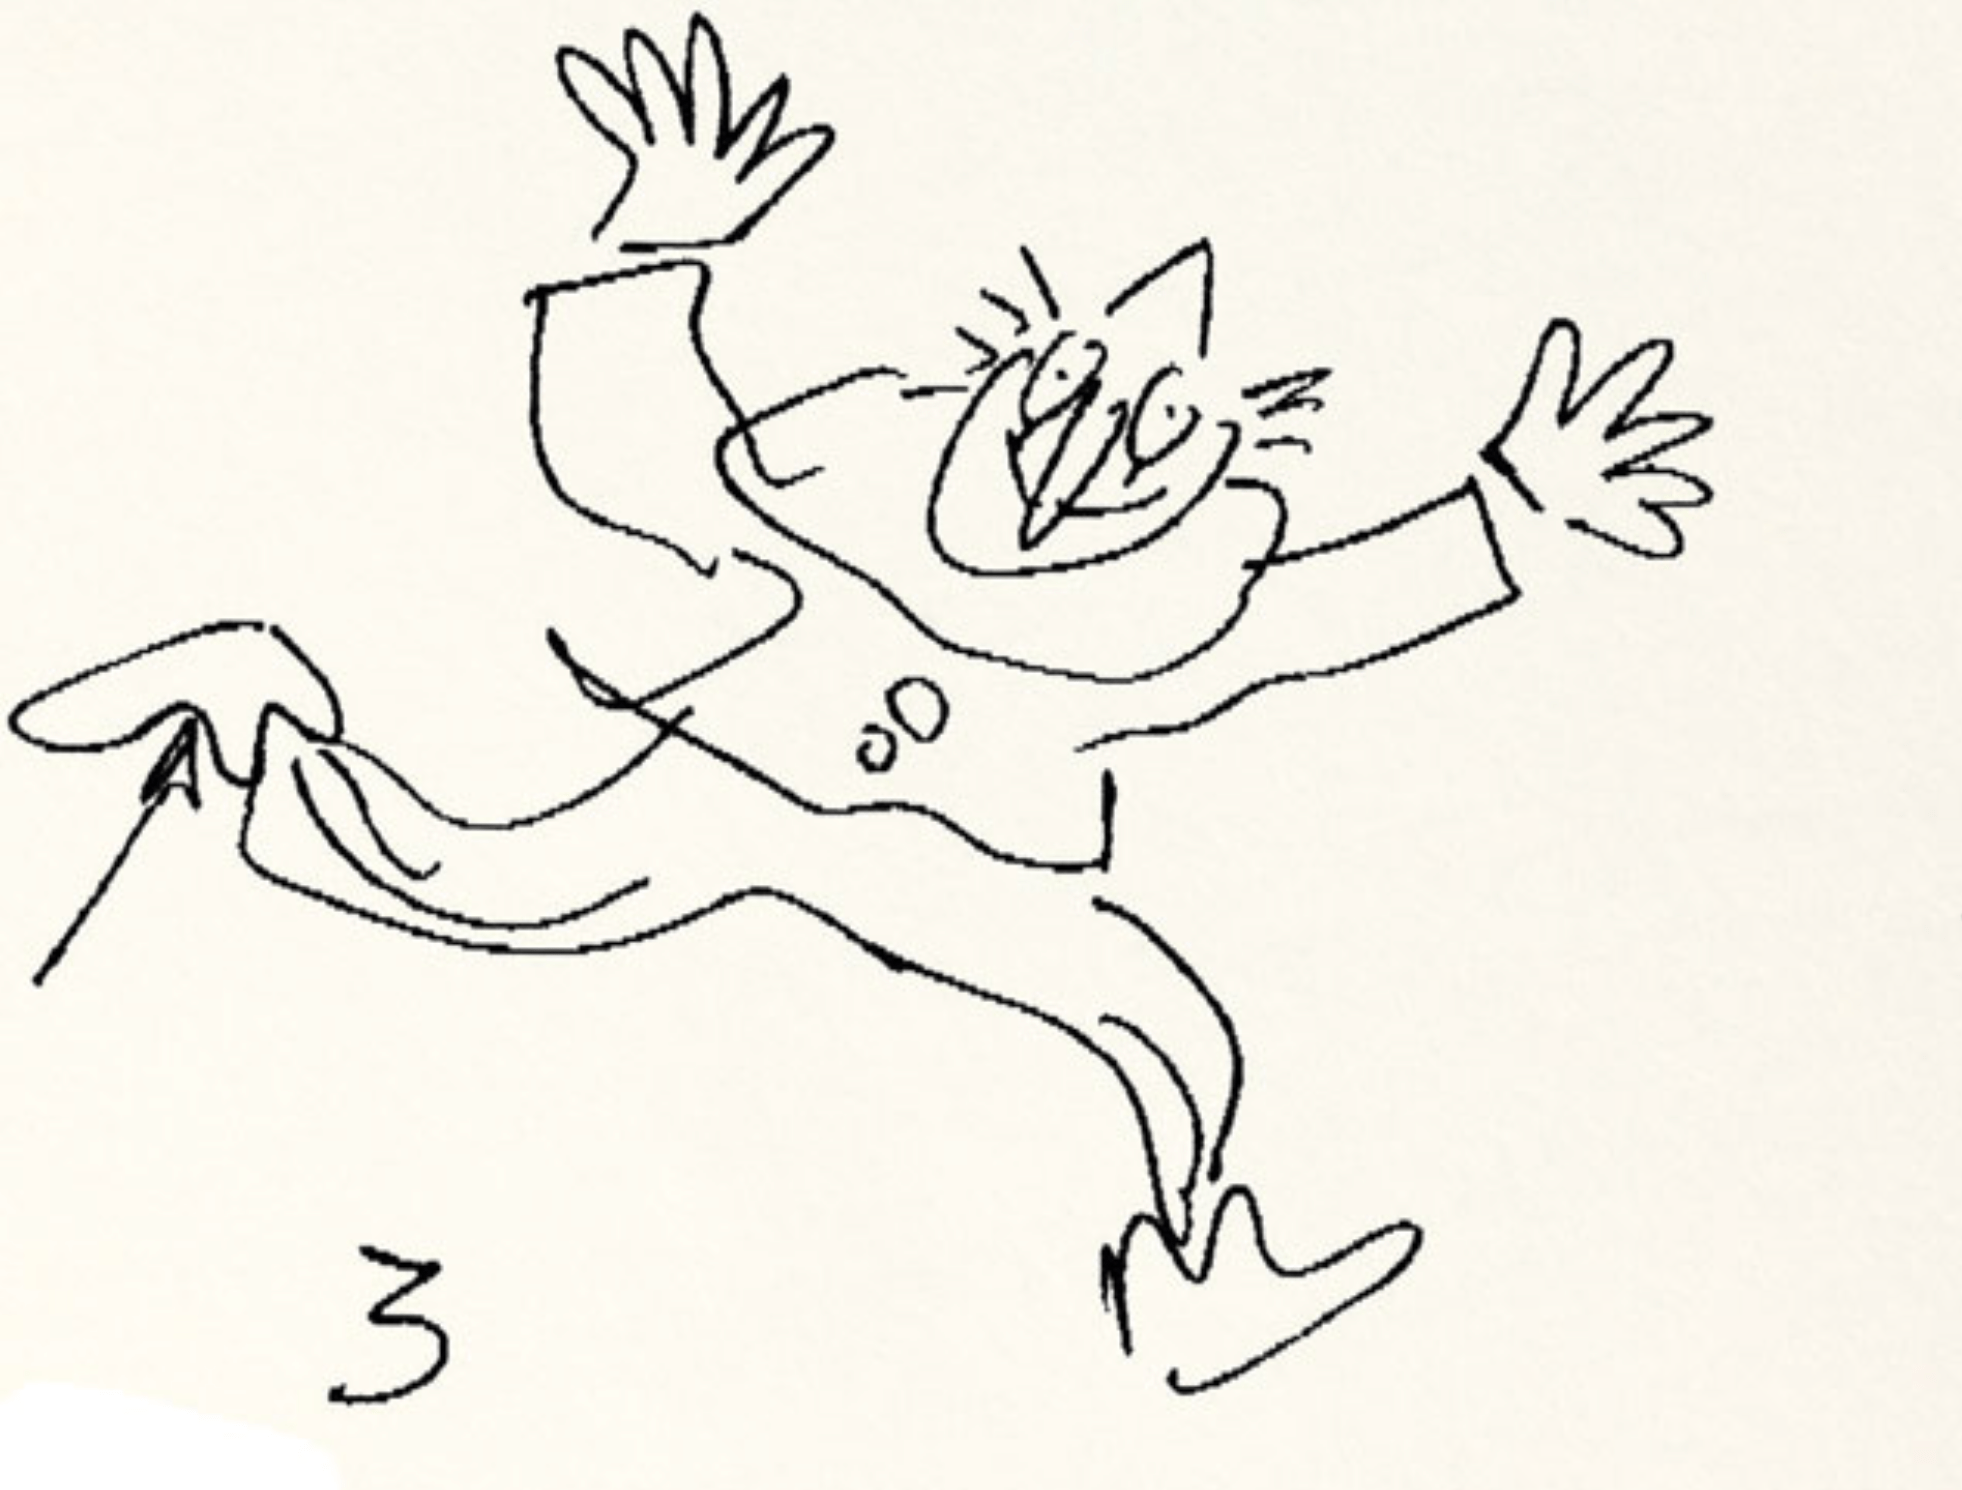 Quentin Blake sketching lesson below... The famed illustrator show us his three quick steps to a quirky sketch